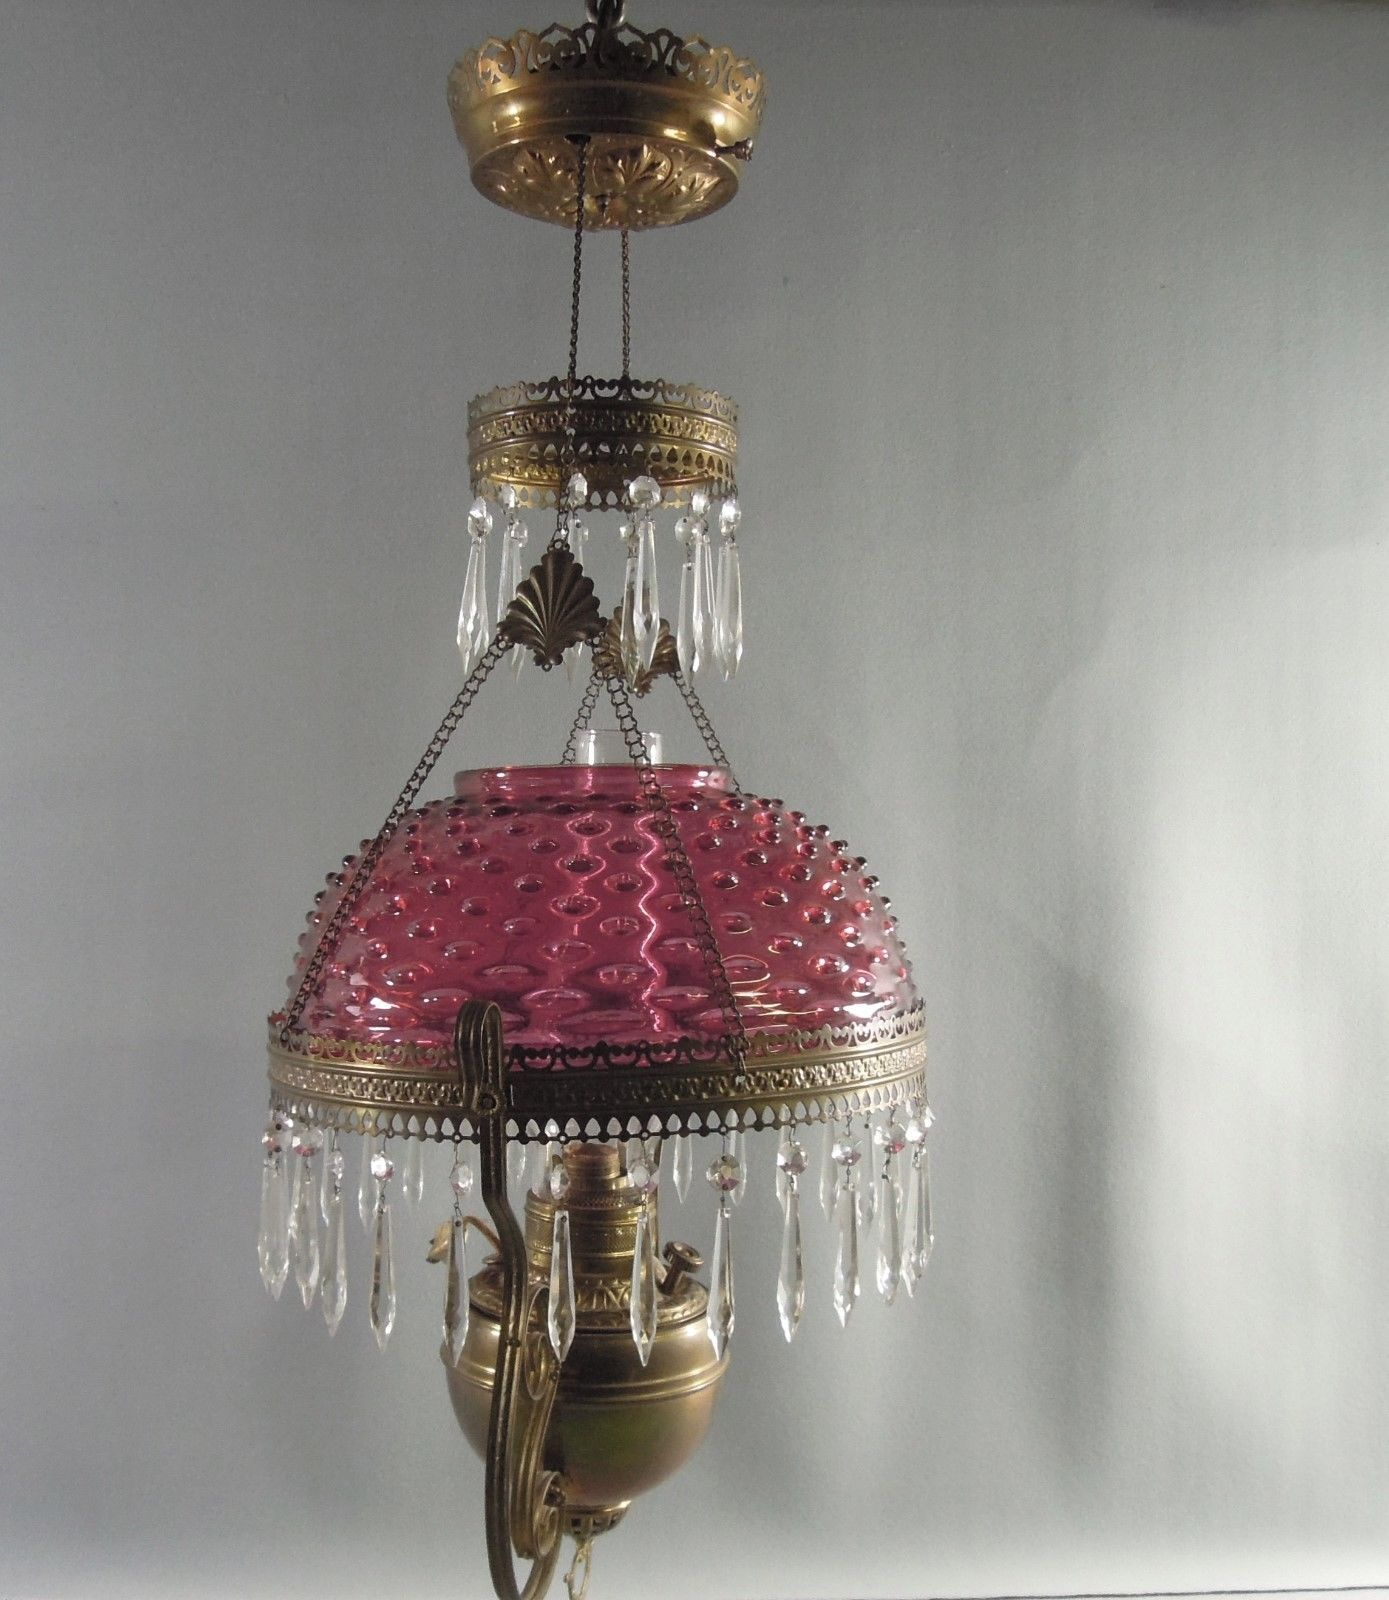 Antique Hanging Oil Parlor Lamp Cranberry Hobnail Glass Shade Pittsburg Lamps